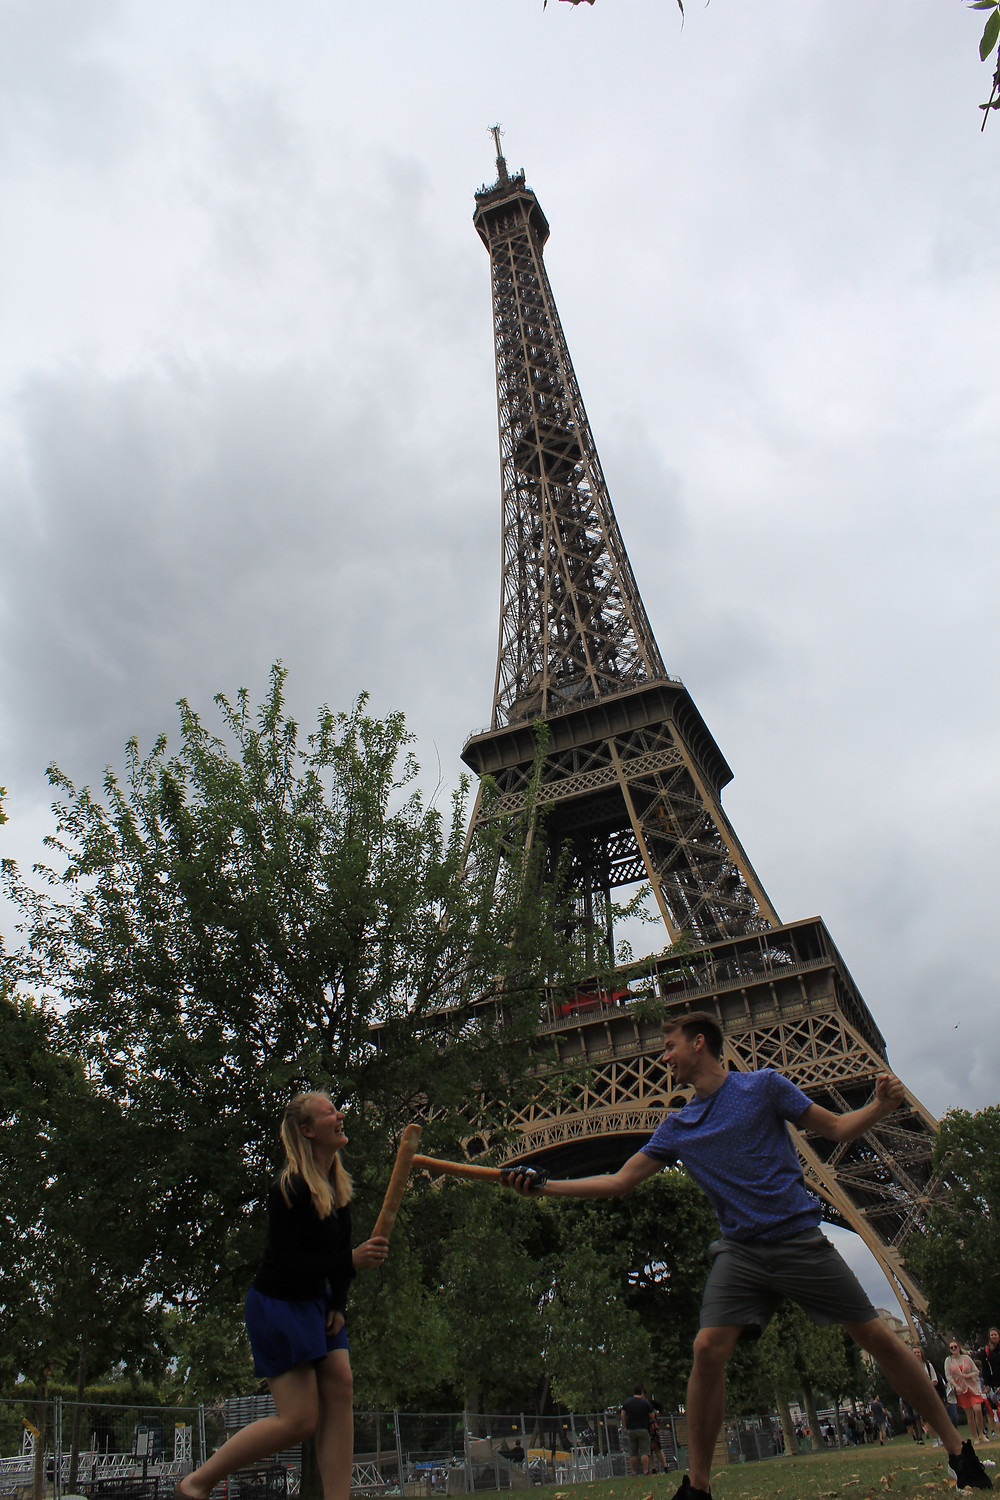 Corrine and her friend in front of the Eiffel Tower in Paris, France having a baguette fight